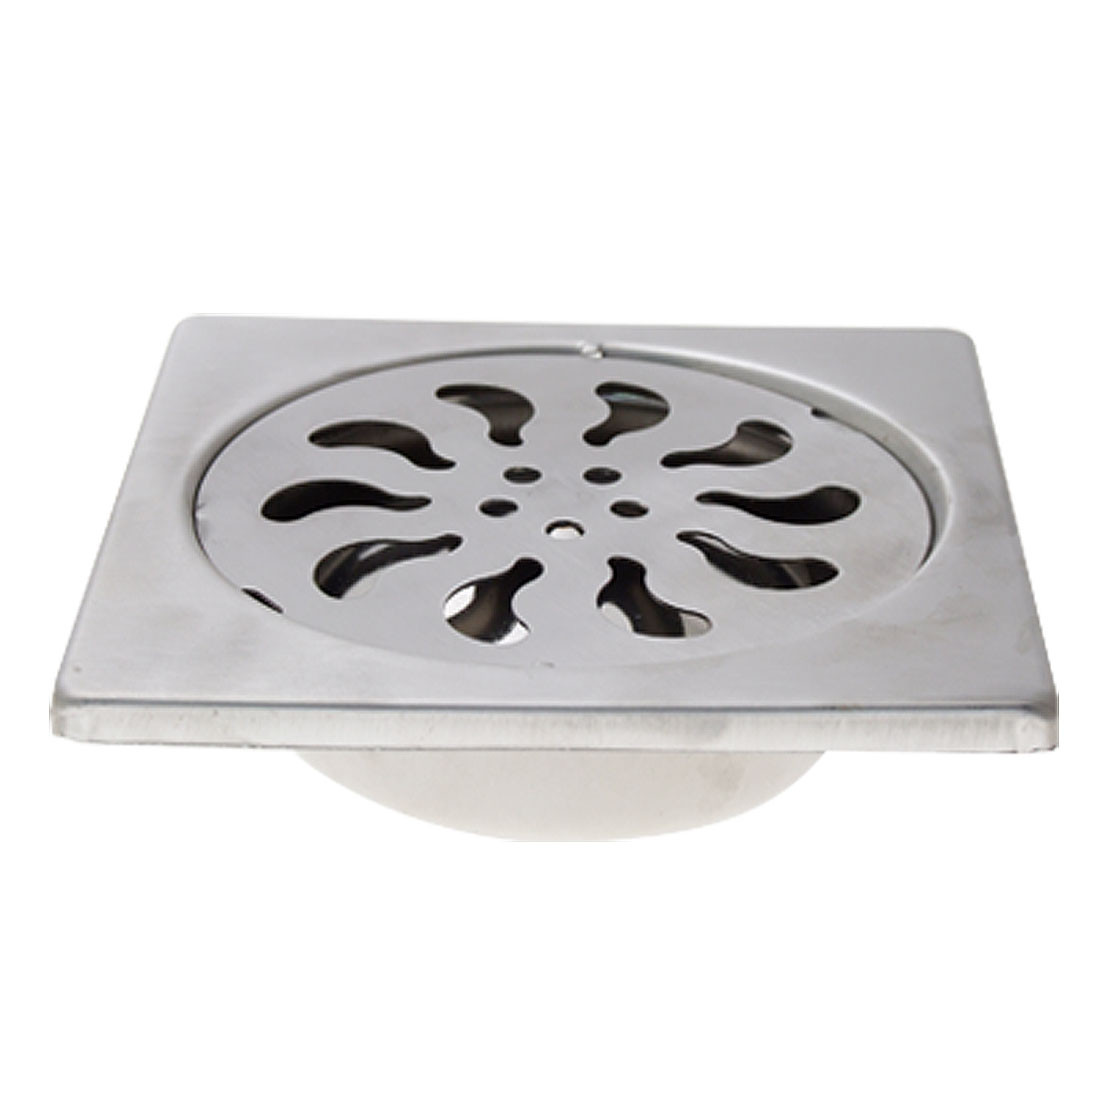 "3.5"" Metal Square Floor Drain Strainer Cover Silver Tone"